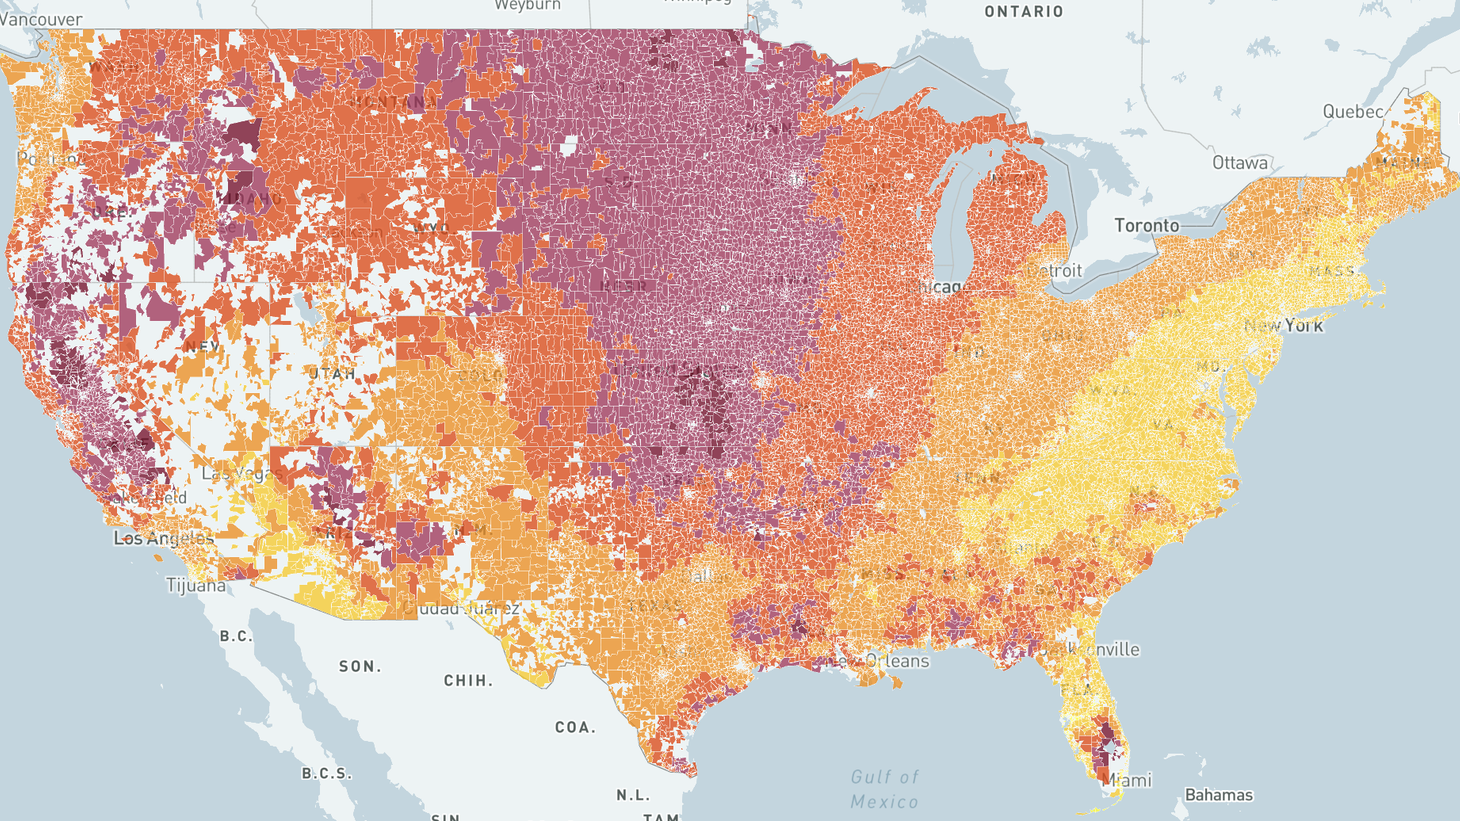 NPR's California Newsroom partnered with Stanford University's Environmental Change and Human Outcomes Lab to map the rise of wildfire smoke across the country